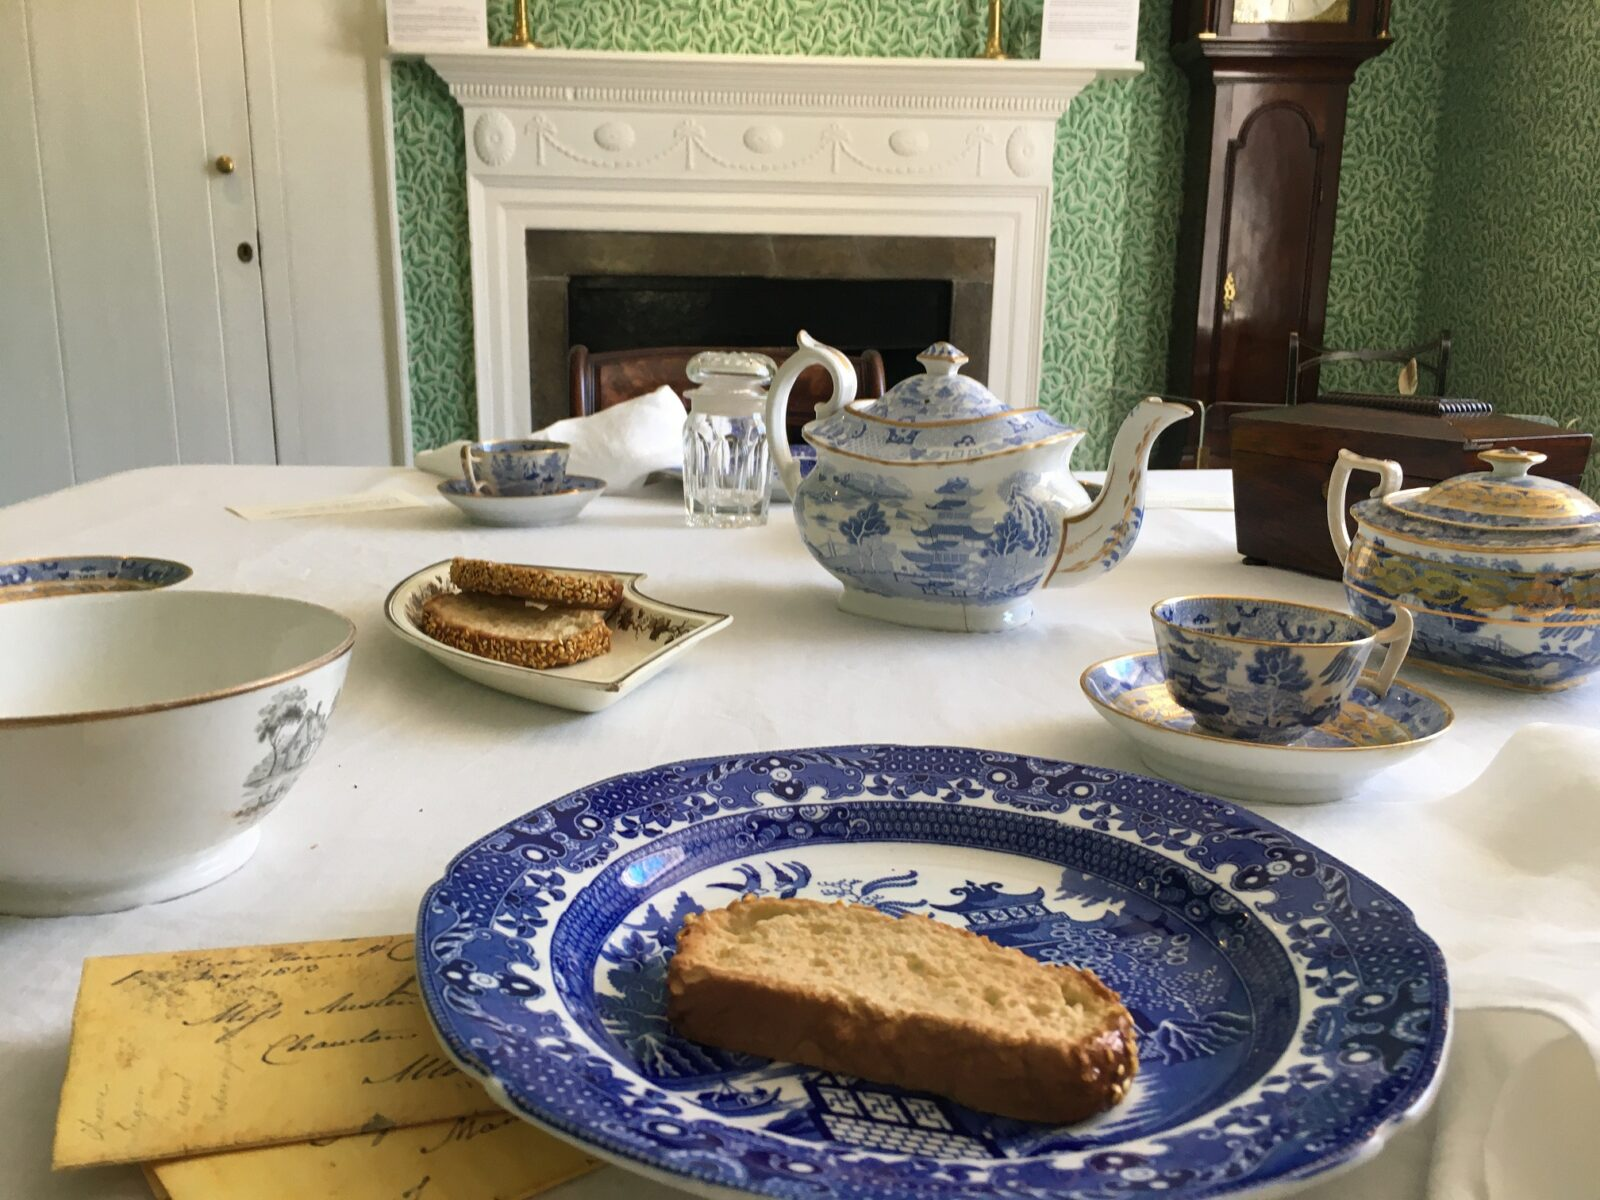 A breakfast display in the Dining Room at Jane Austen's House